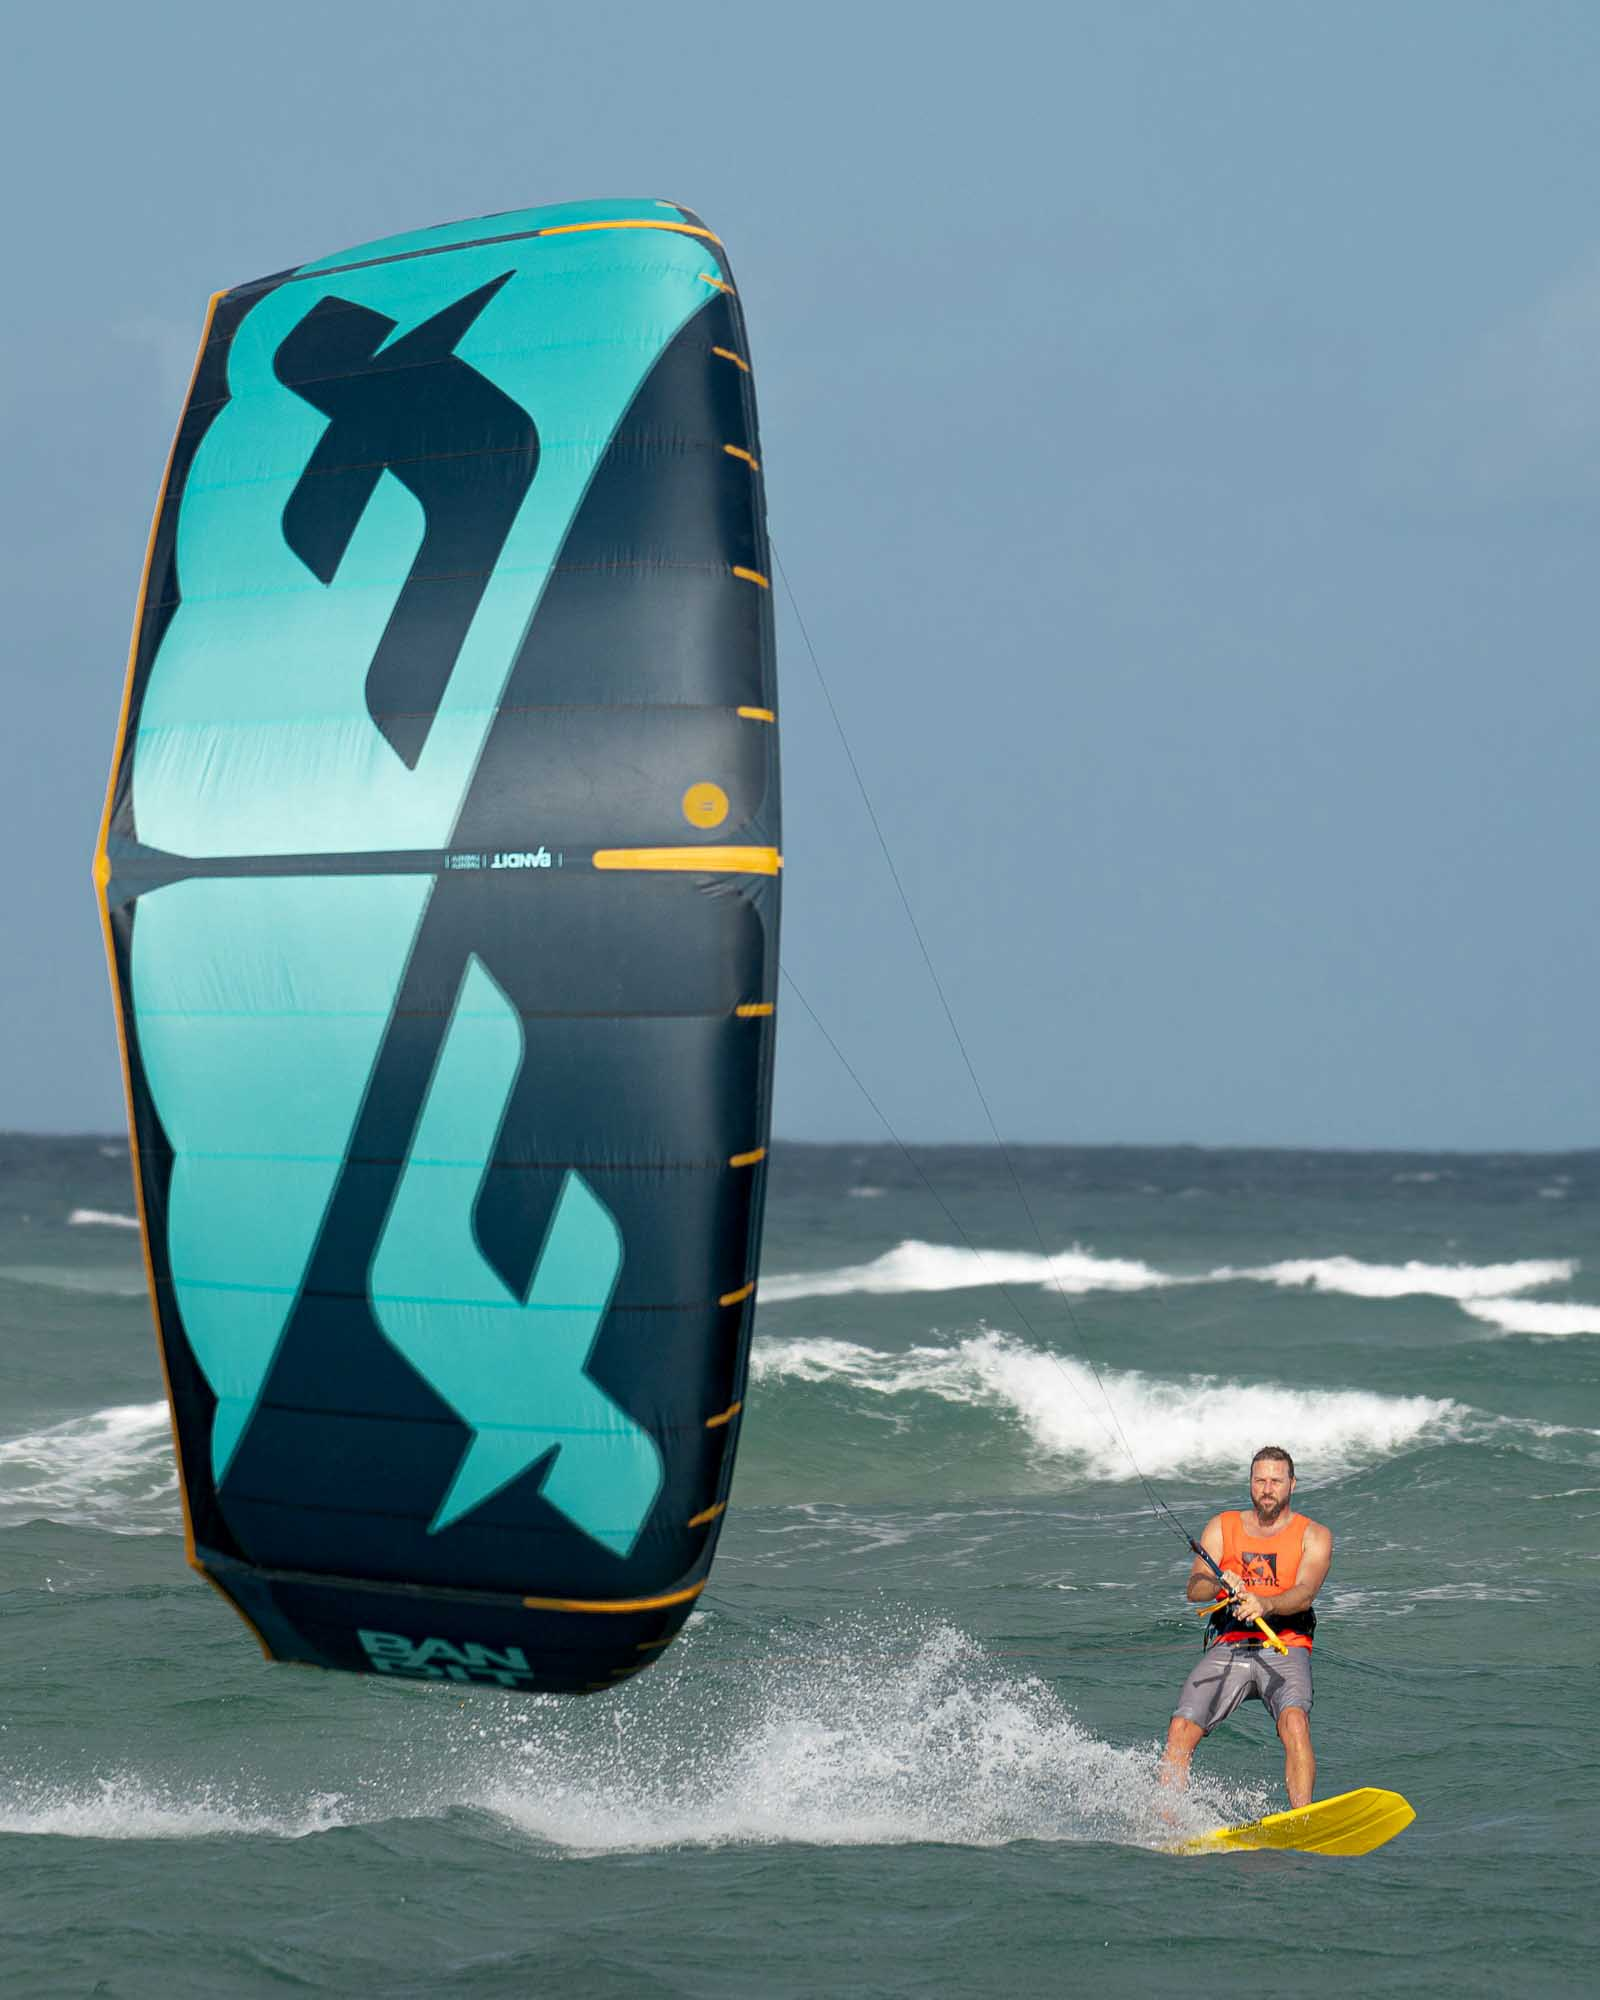 Bandit_2020_Wave_Test_Kitesurfing_Copyright_Freedom_2